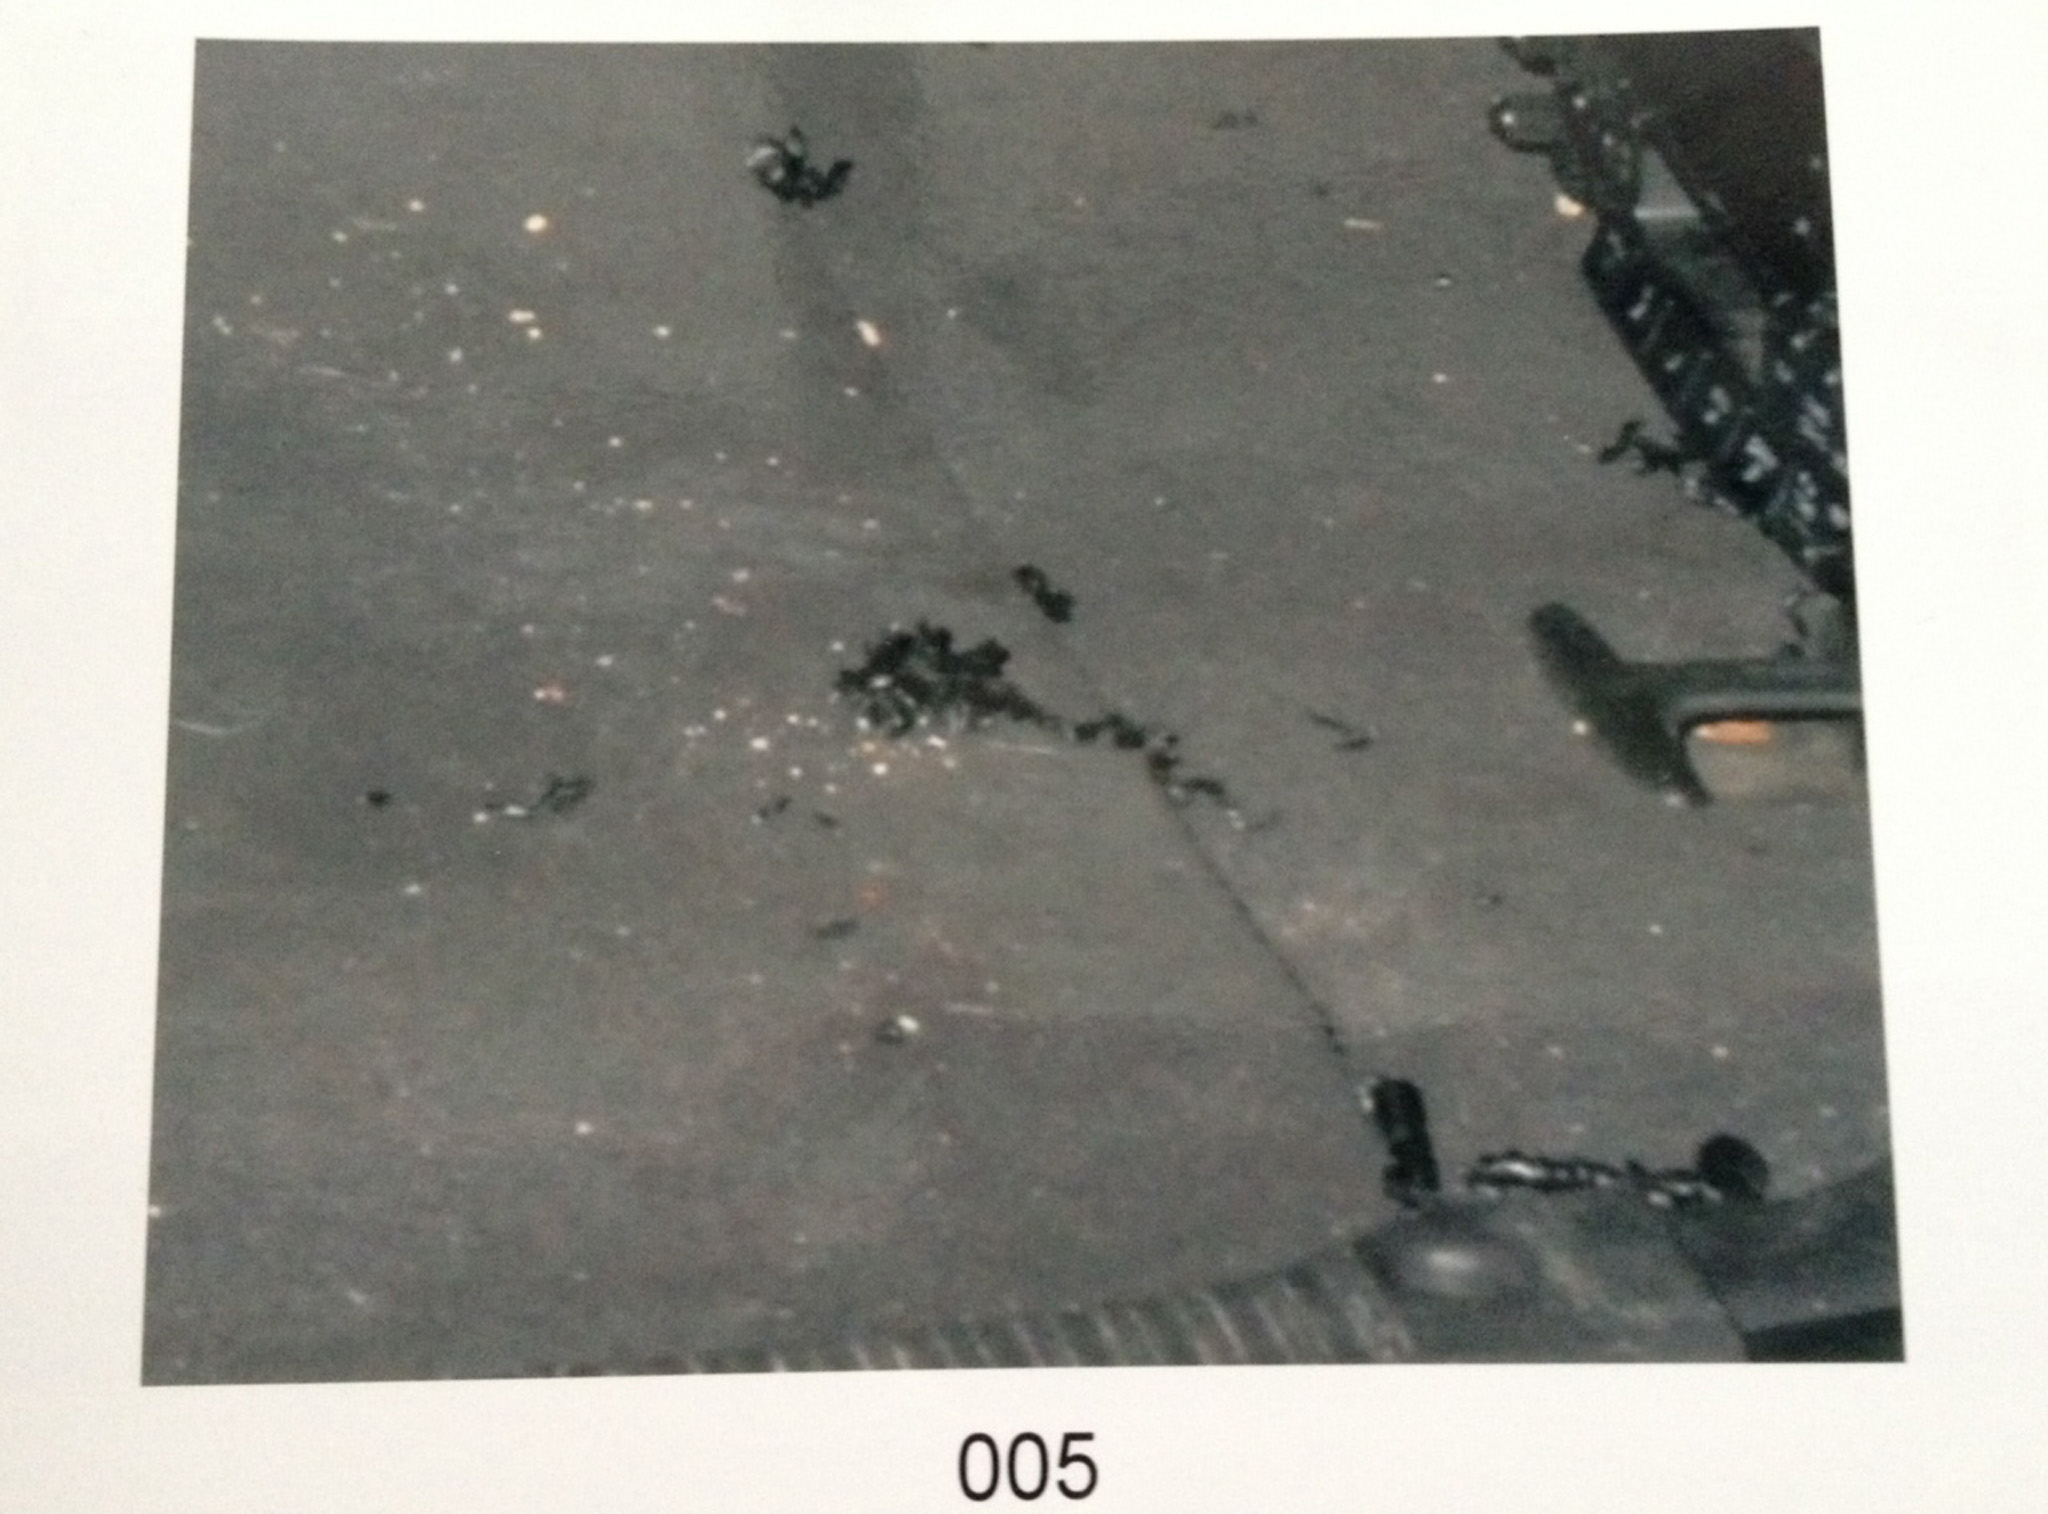 This Winnipeg police photo of black plastic curls found in the back of Chad Davis's Jeep are all that remains of what may have been evidence relating to the lid of the barrel he was found dead in. Police, initially believing he was a missing person and not a homicide victim, didn't keep the plastic bits.